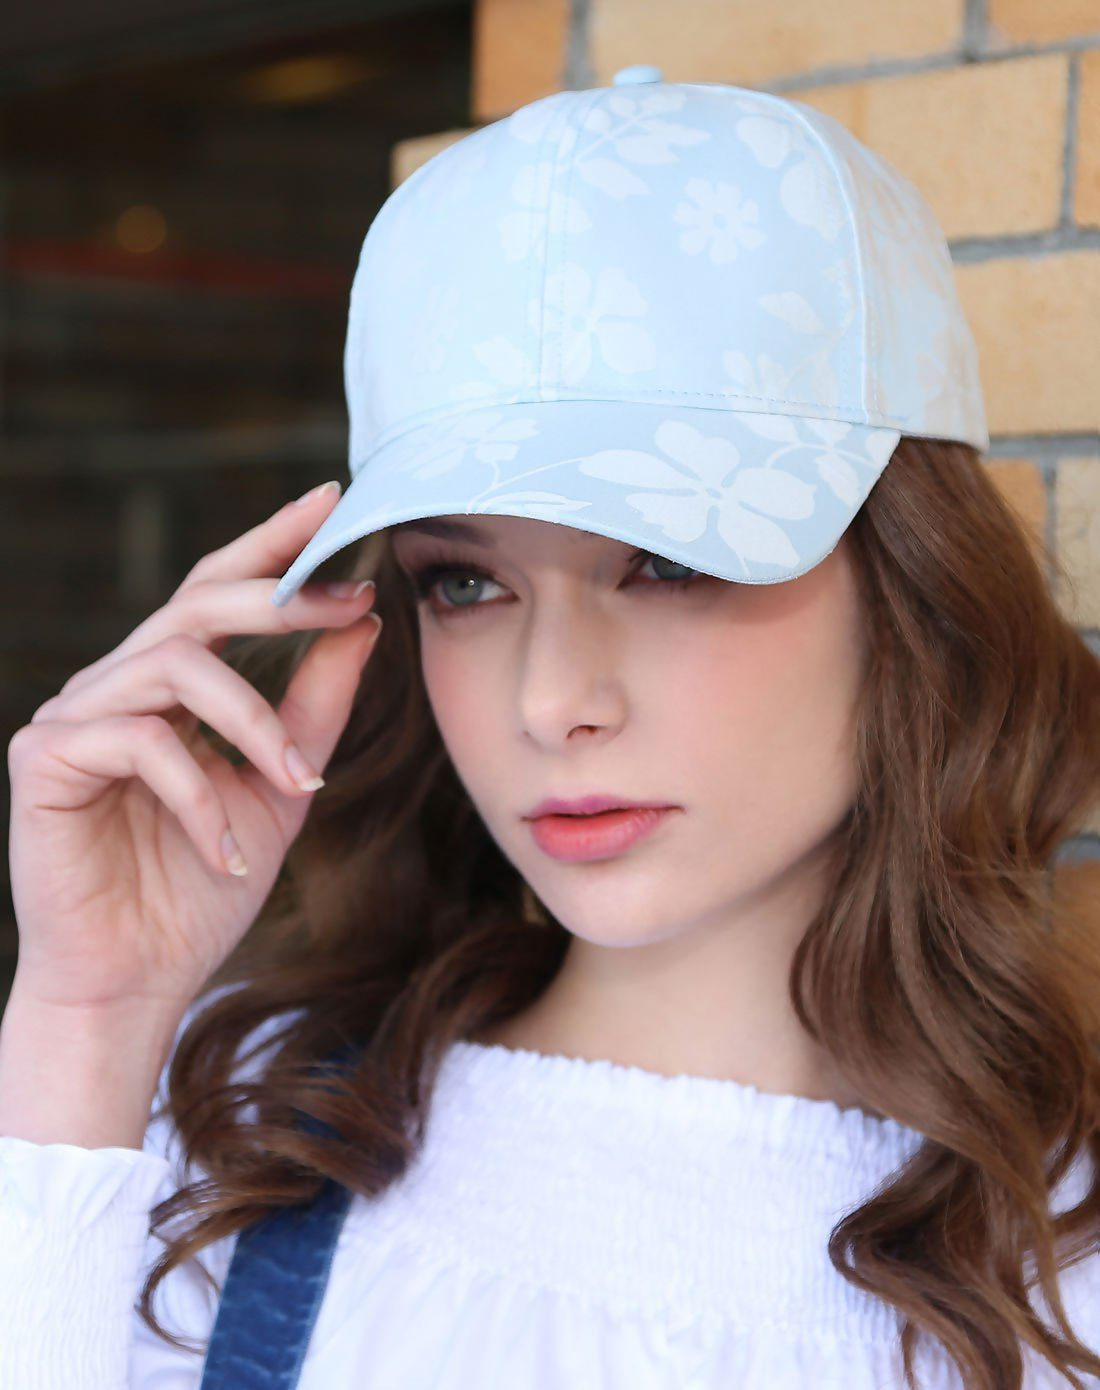 5753e238866 VIPshop Blue Women's Hat & Cap ❤ Get more outfit ideas and style ...